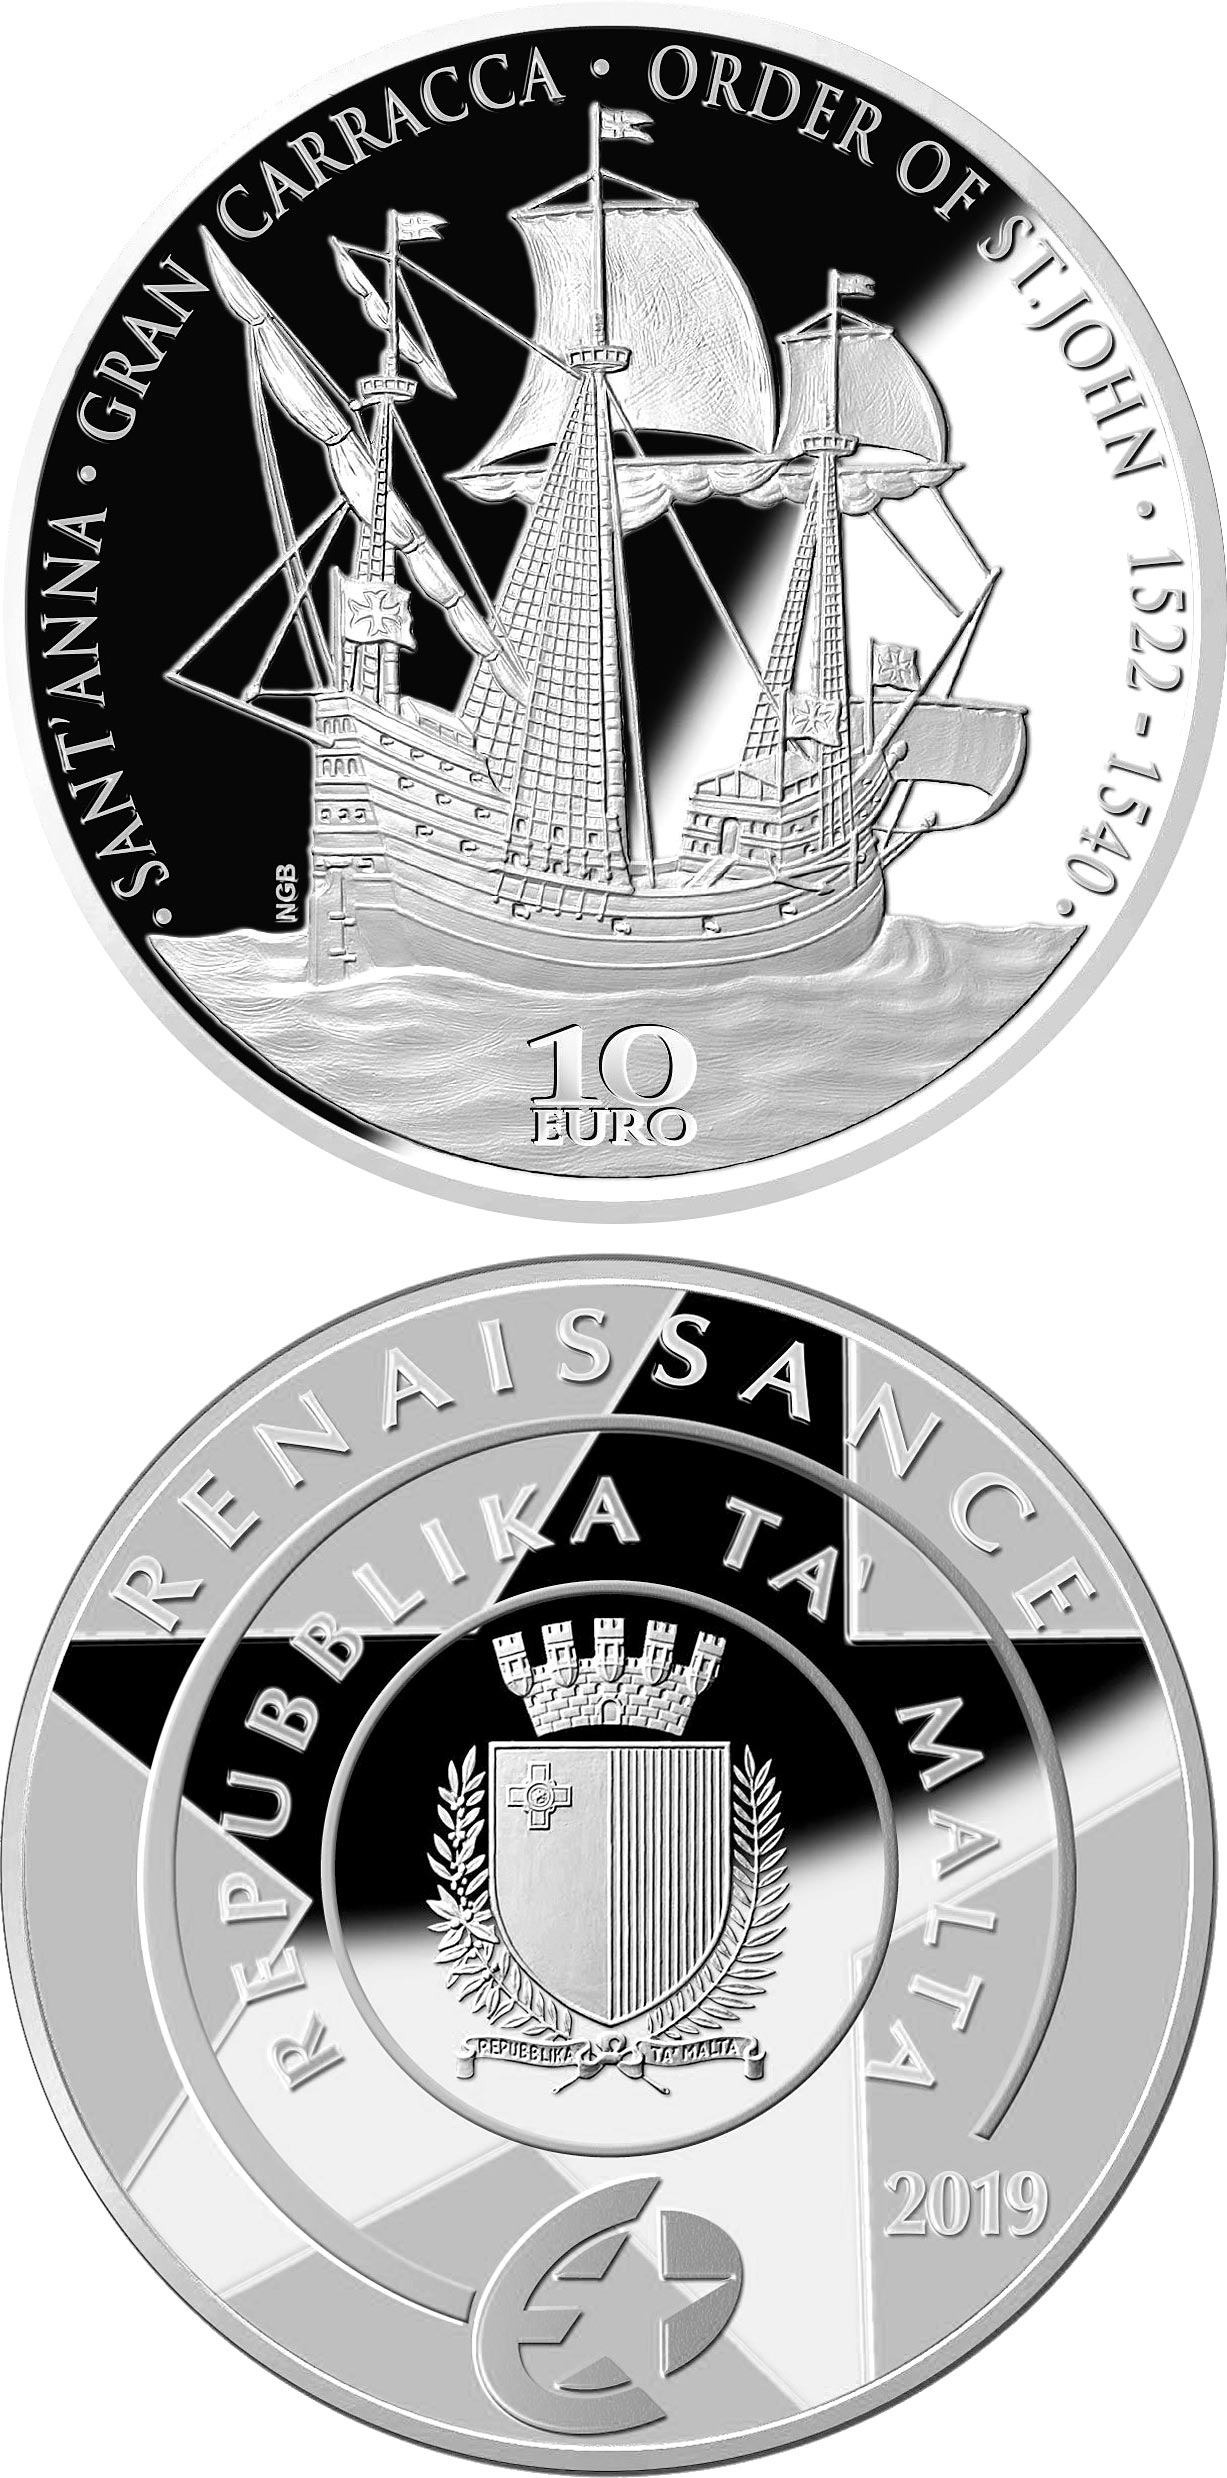 Image of 10 euro coin - The Gran Carracca of the Order of St John | Malta 2019.  The Silver coin is of Proof quality.